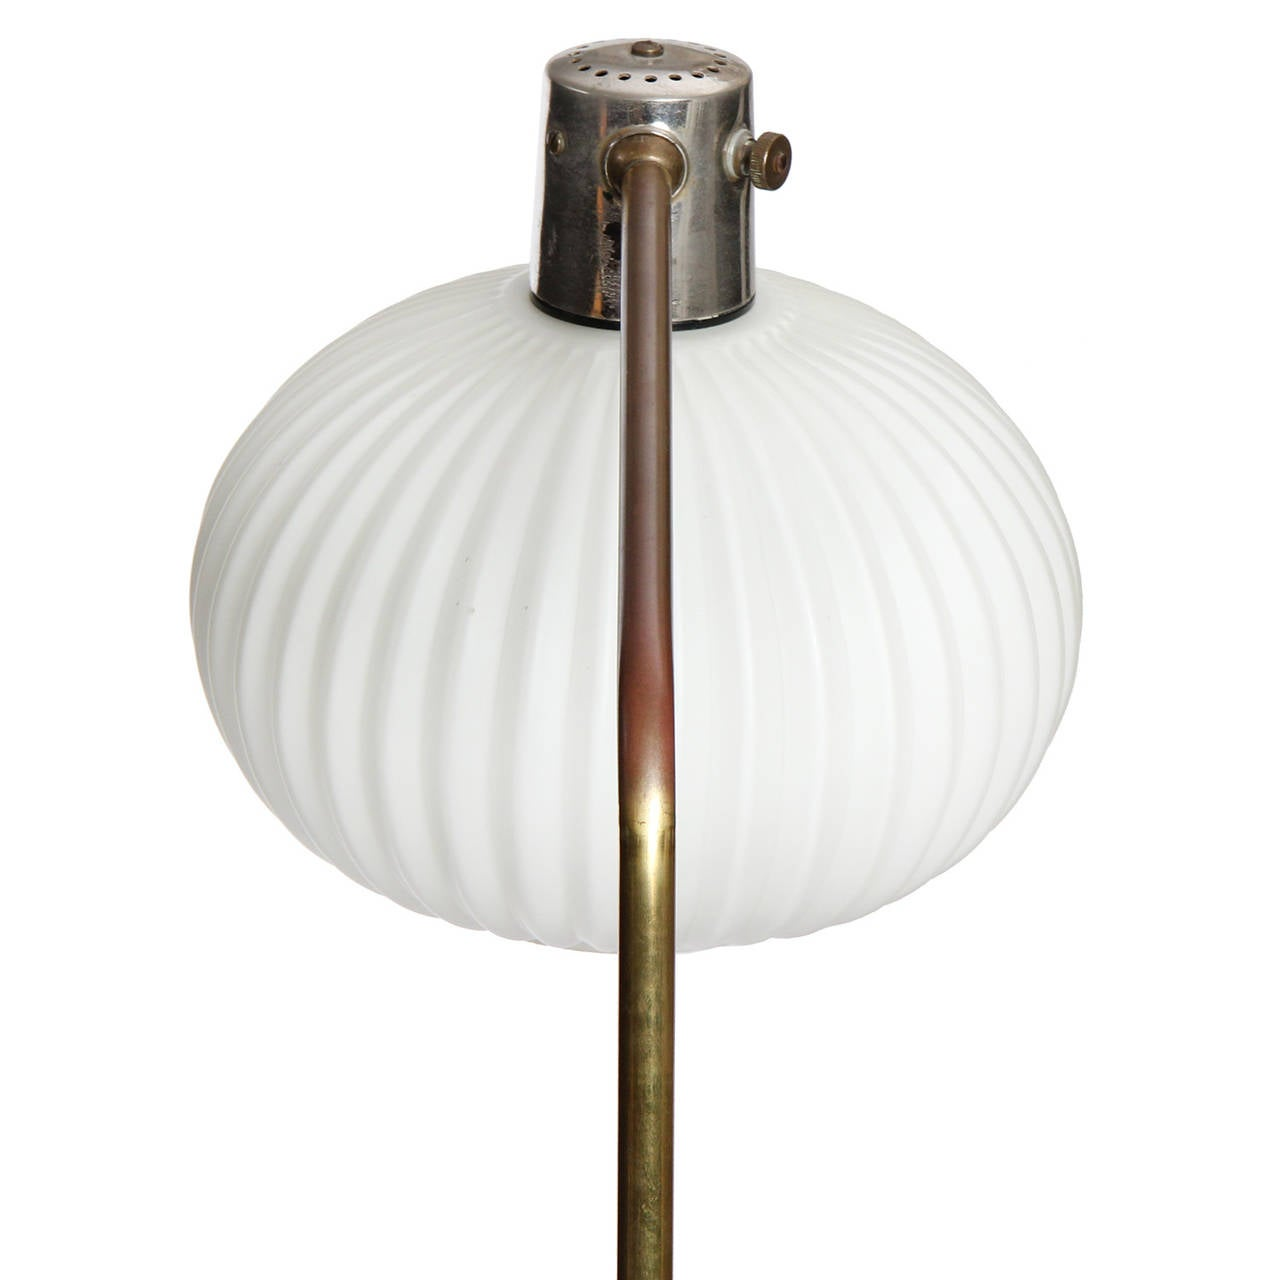 Articulated telescoping floor lamp for sale at 1stdibs for Led articulated floor lamp